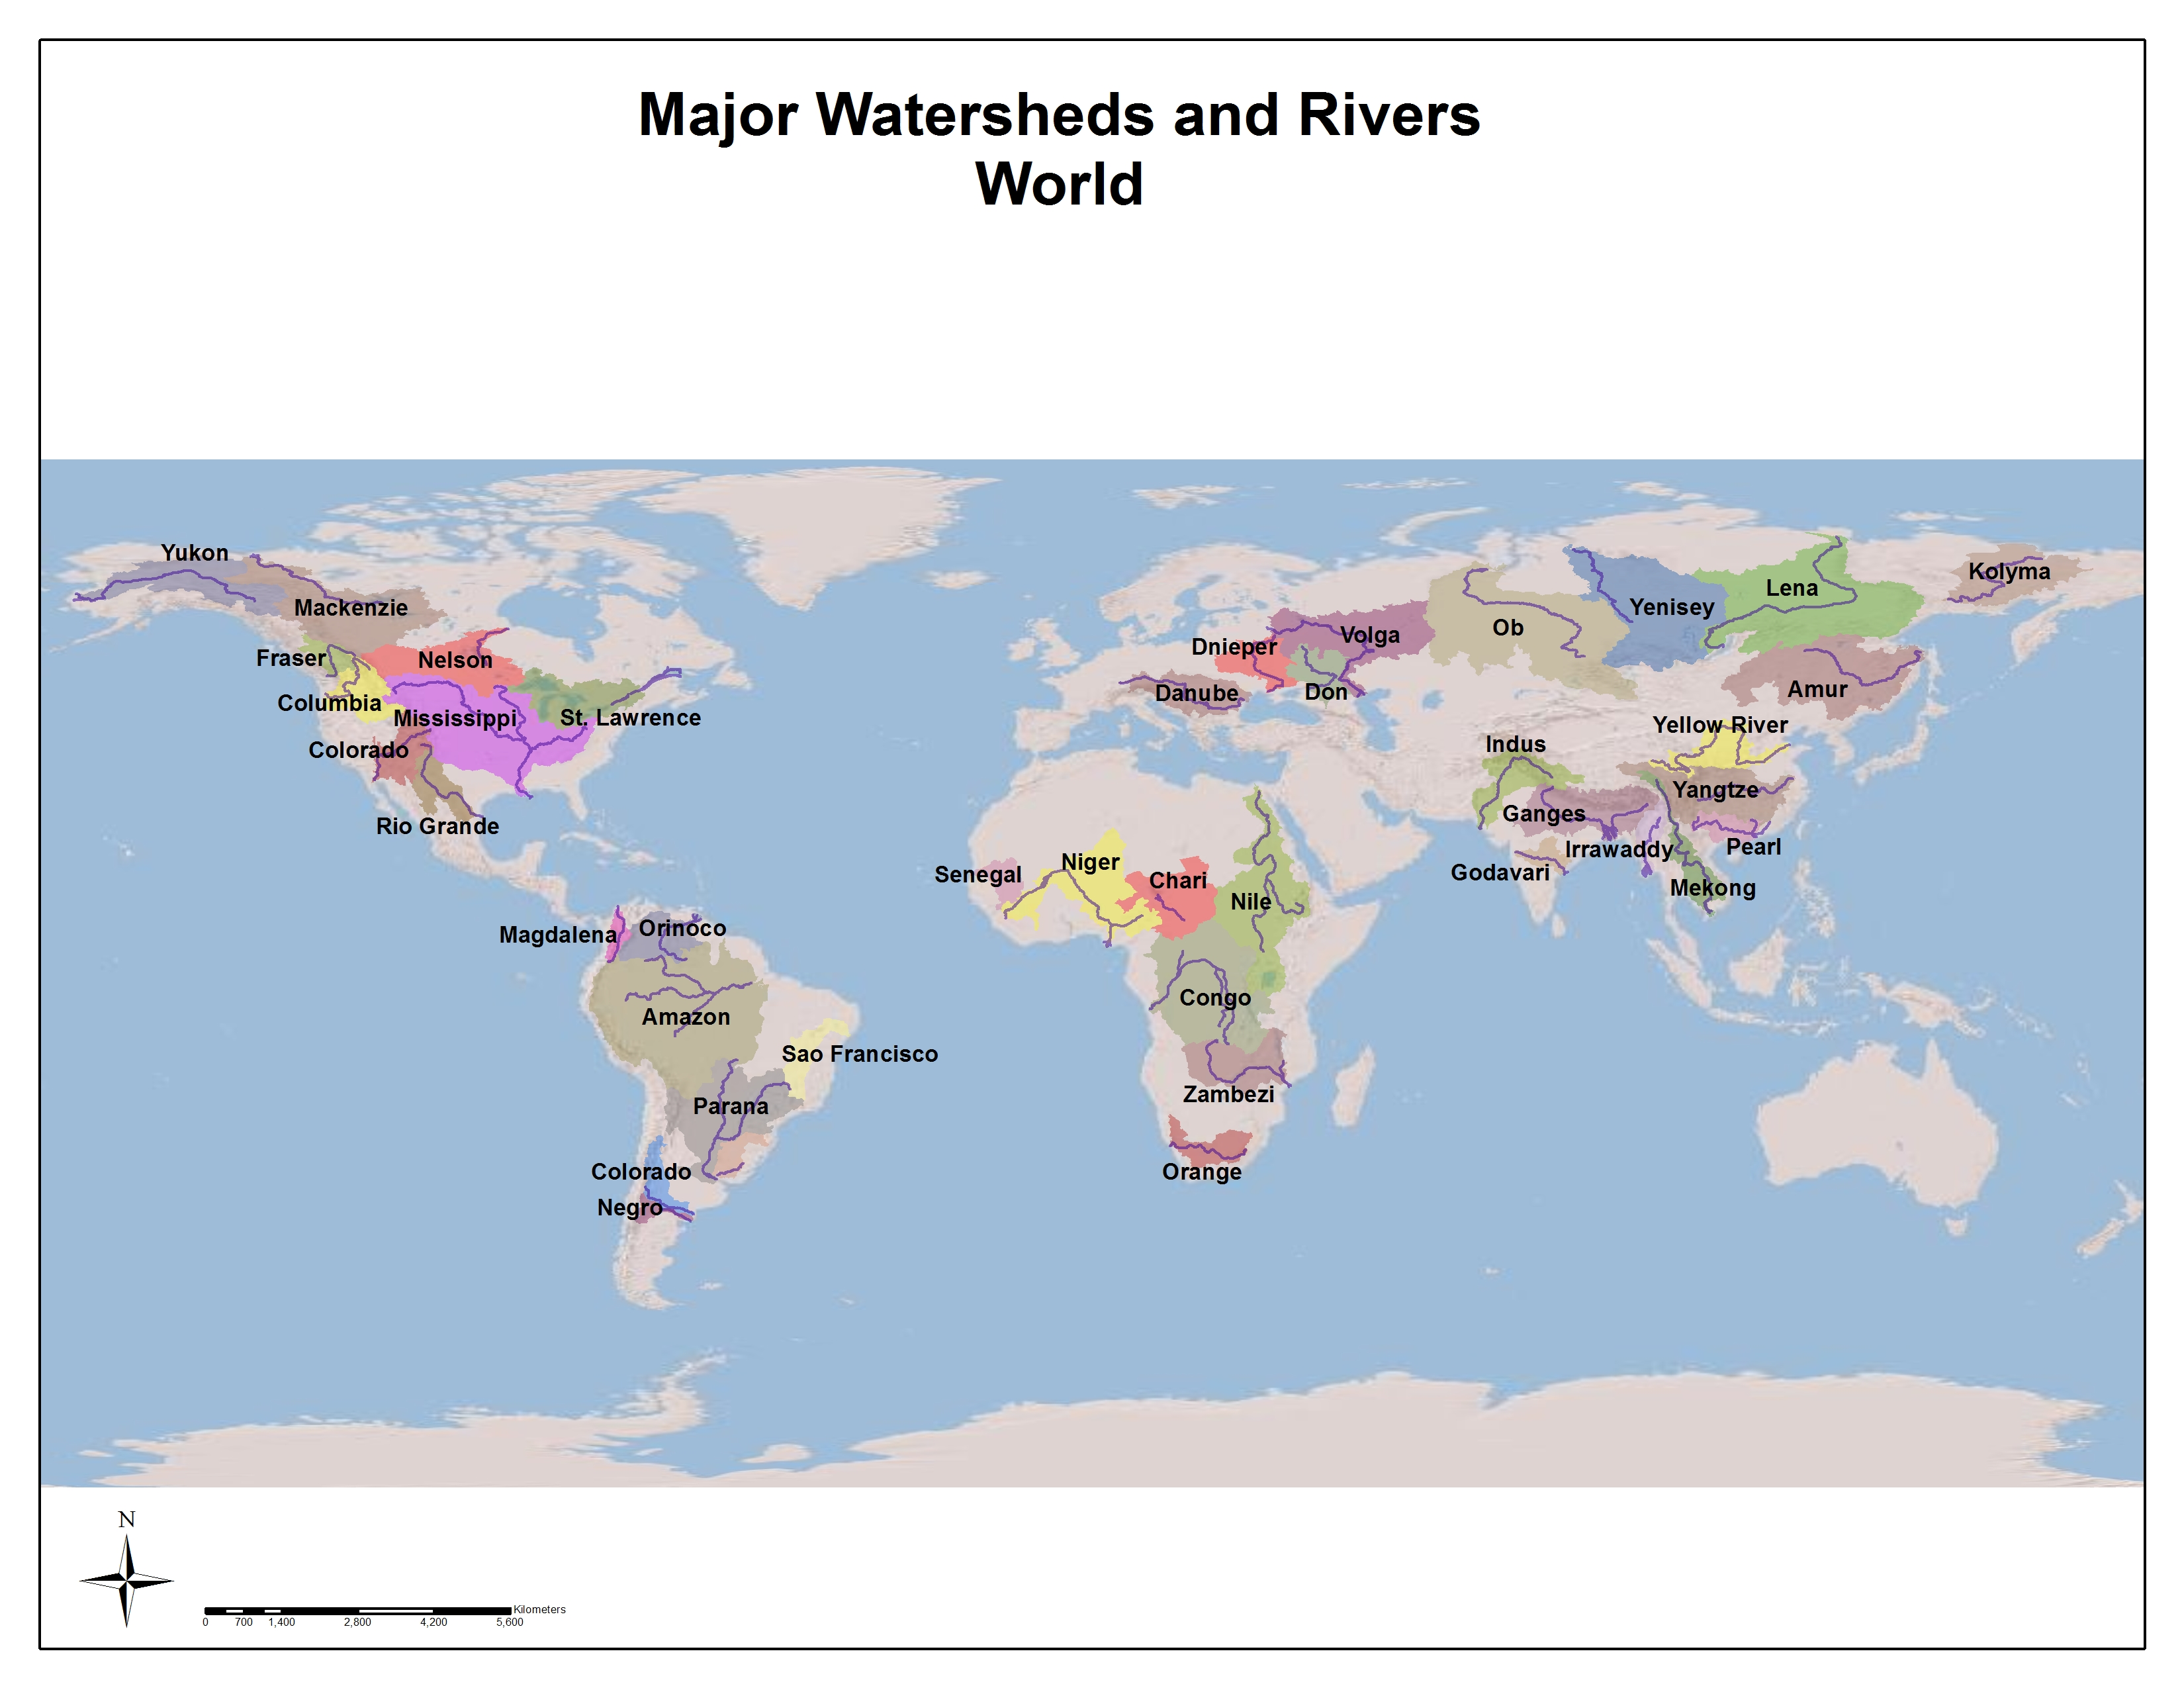 Map of the major watersheds and rivers of the world. Most of Afro-Eurasia and the Americas are covered by these watersheds, with notable exceptions over the Middle East and the Sahara Desert. Courtesy of the University of Pittsburgh Library System map collection.